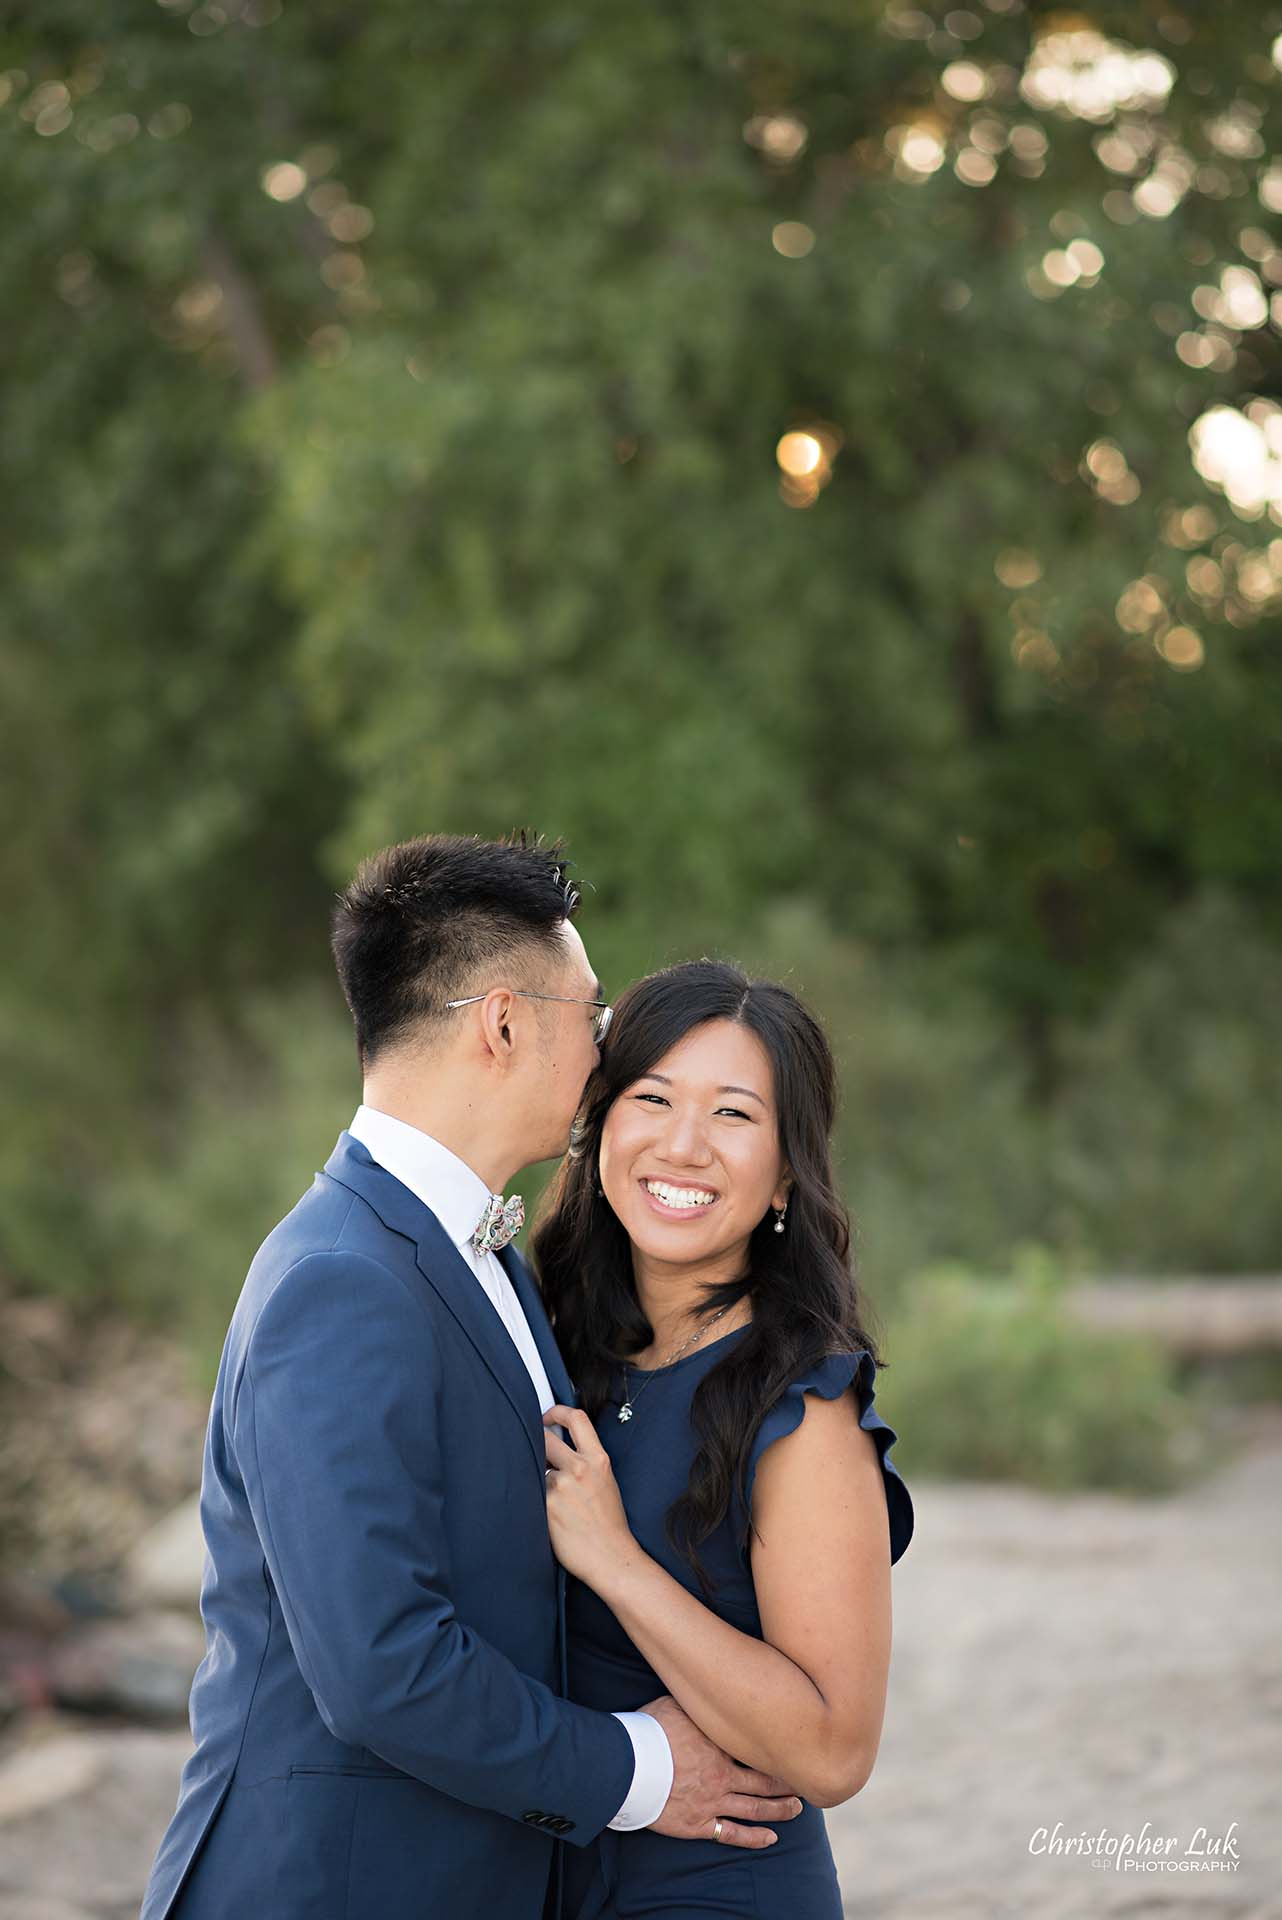 Christopher Luk Toronto Wedding Photographer - Engagement Photography - Sunnyside Pavilion Park Beach Boardwalk Toronto - Bride and Groom Natural Candid Photojournalistic Hug Smile Trees